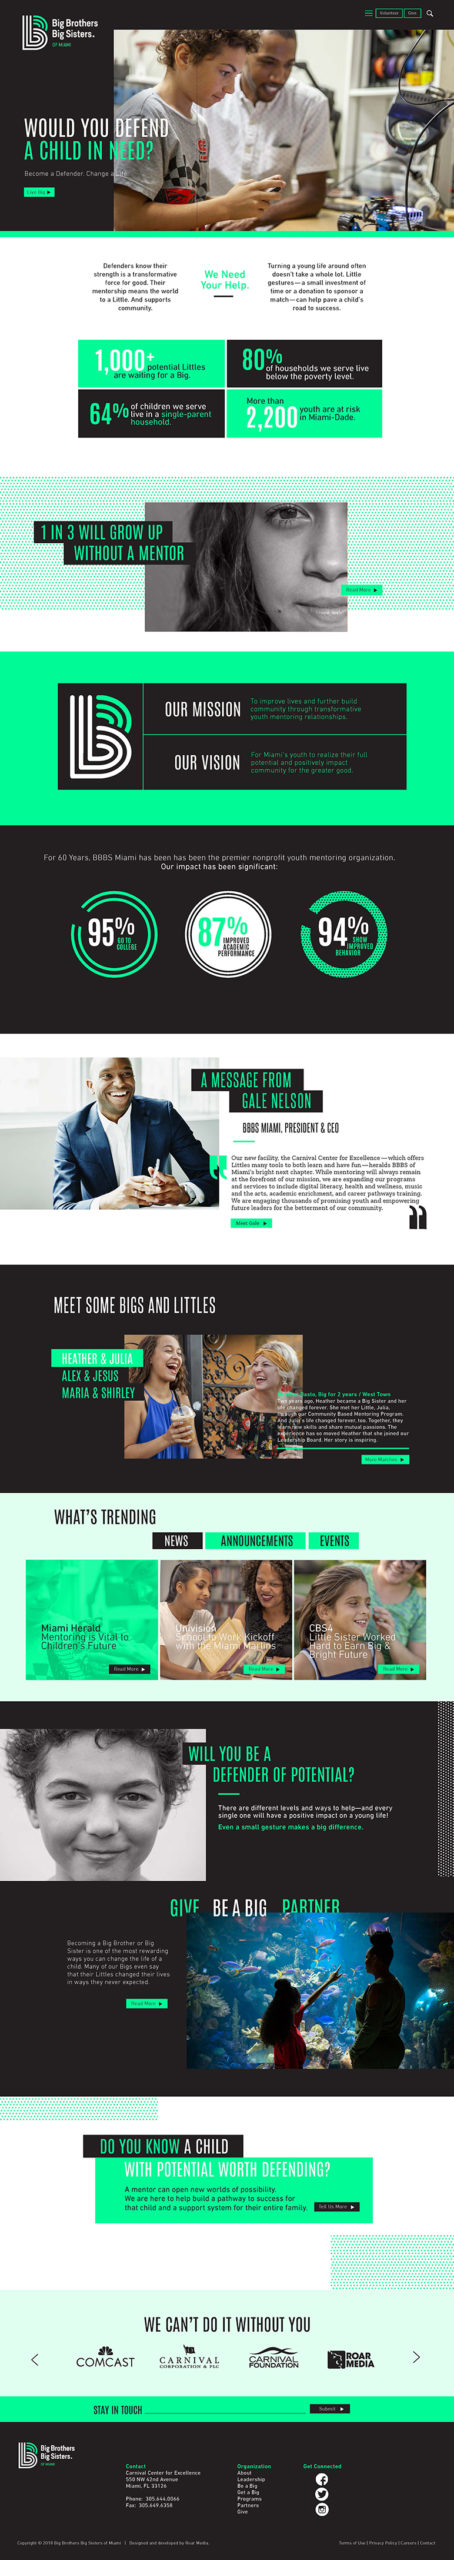 webdesign sample layout new york, ny